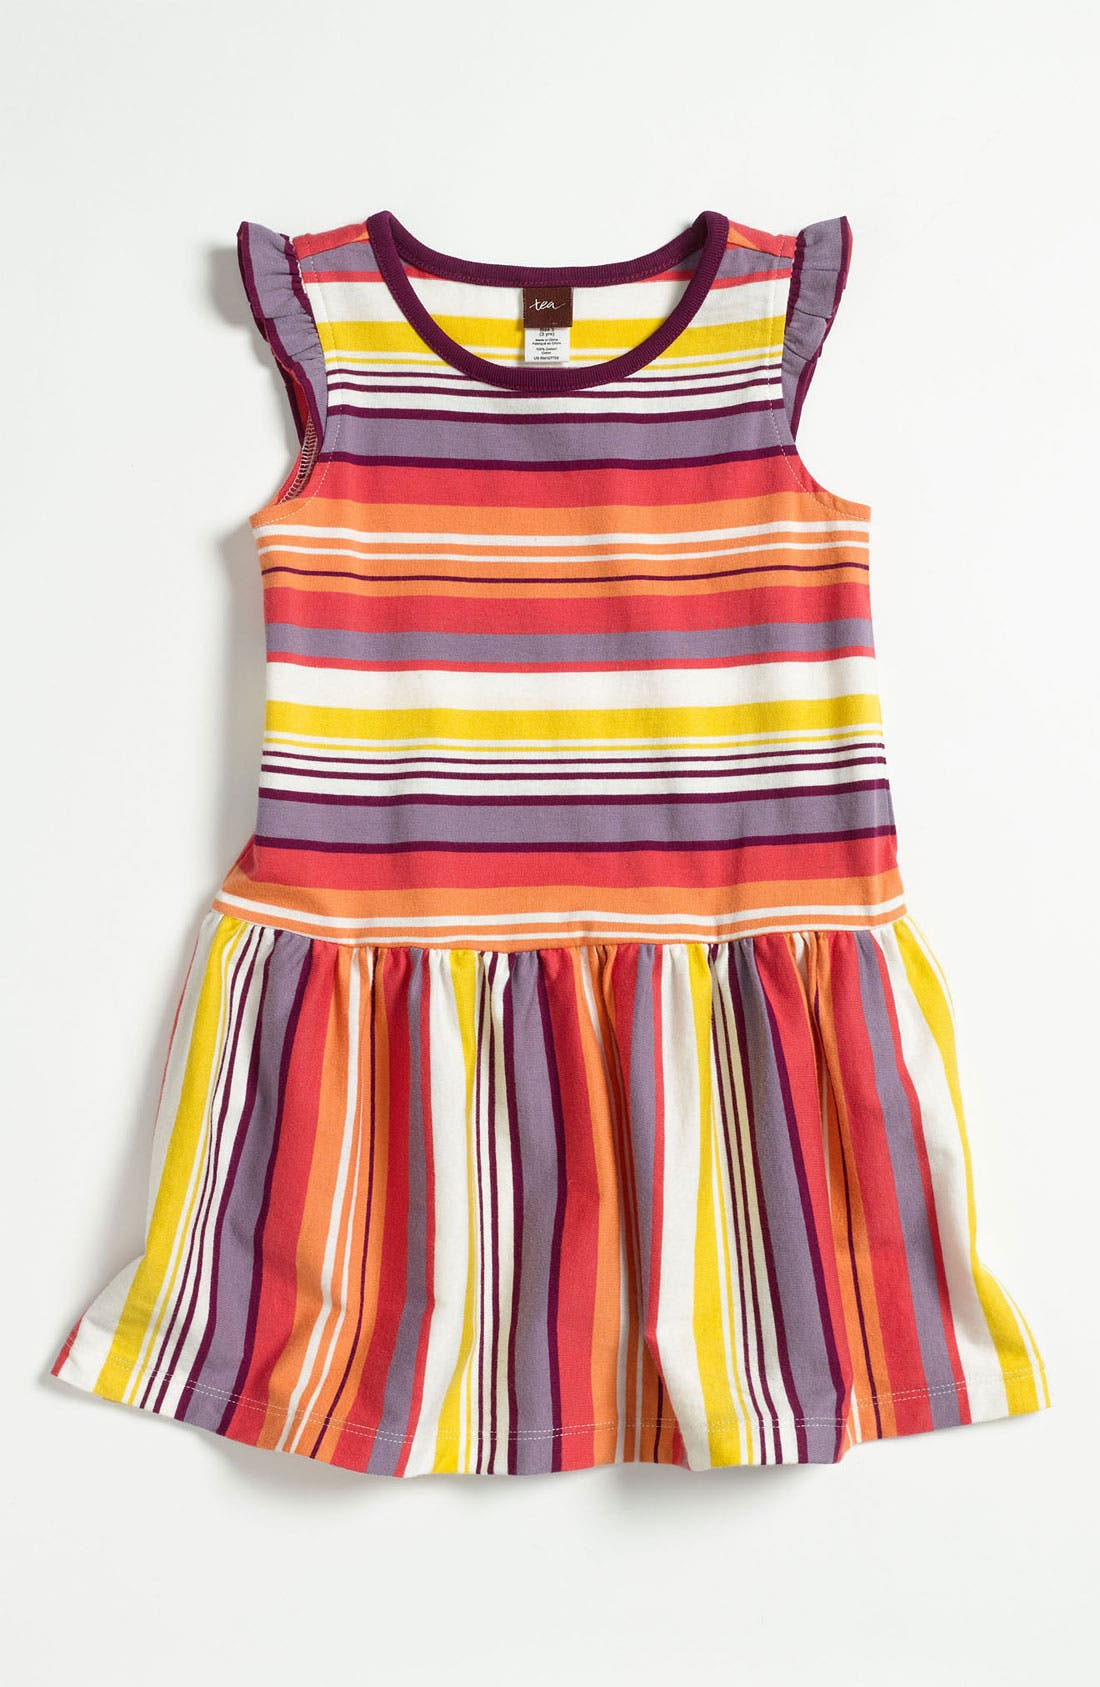 Main Image - Tea Collection 'Sunset Stripe' Dress (Infant)